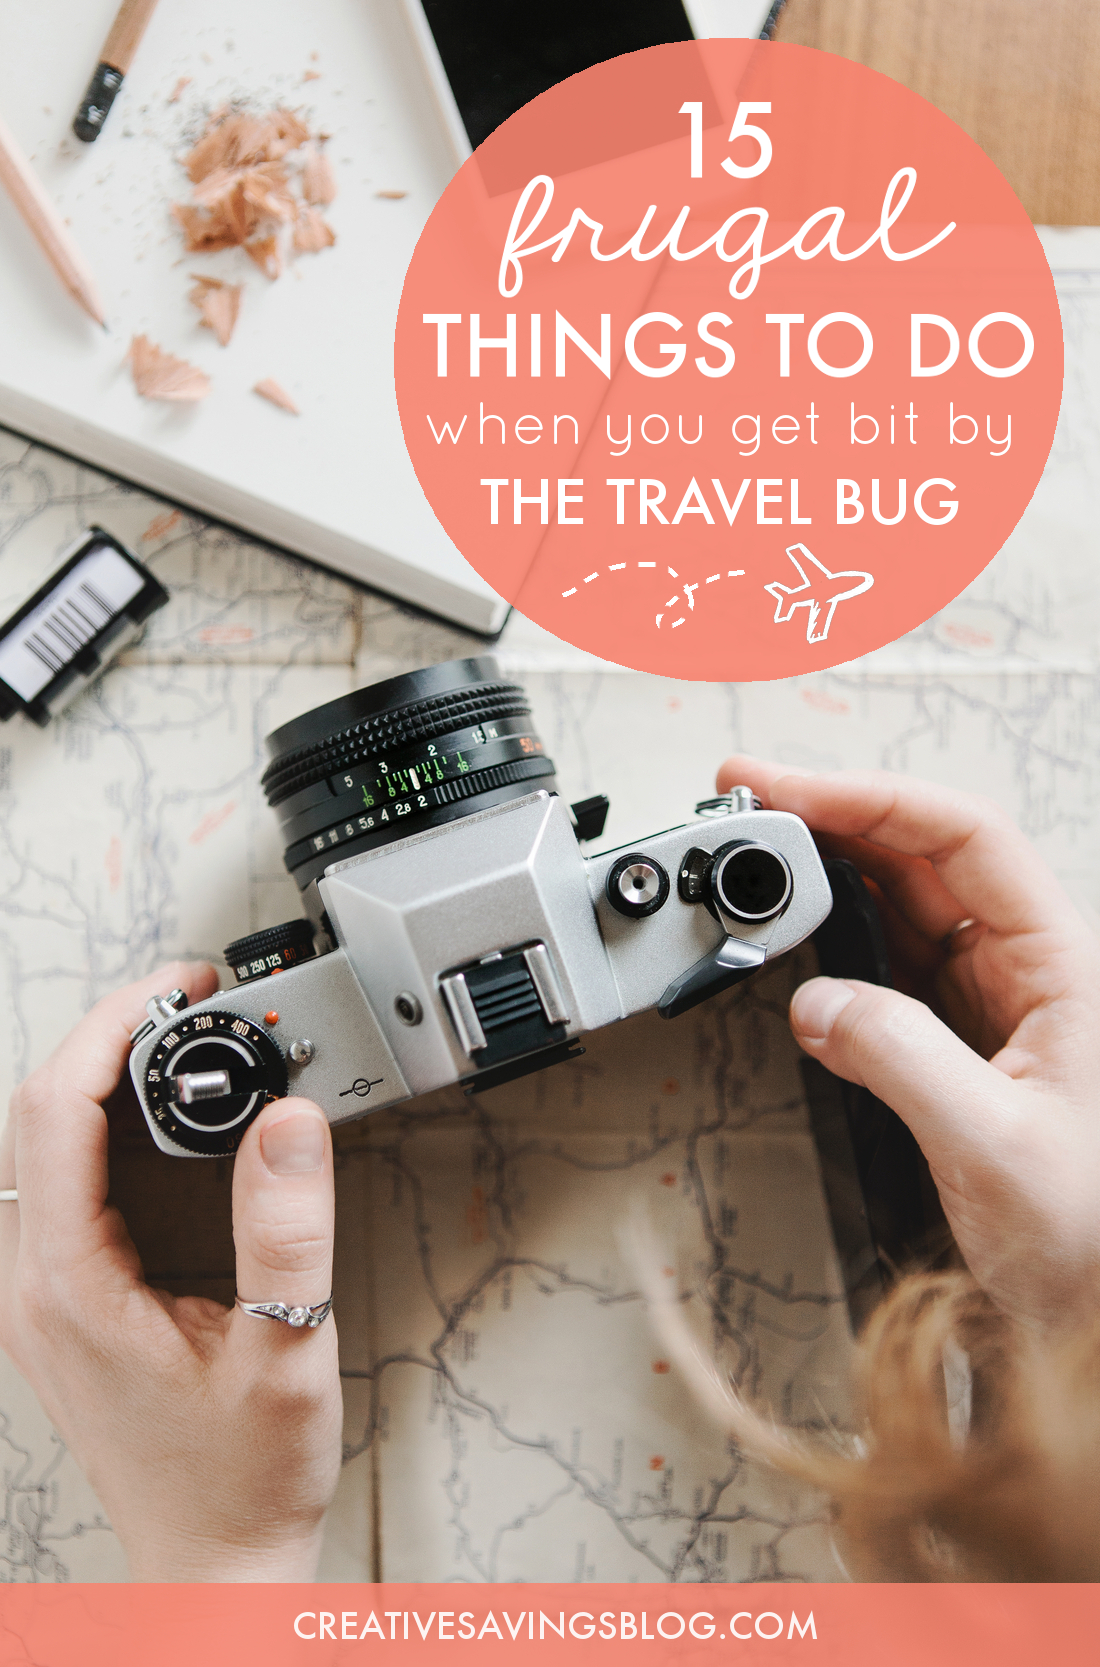 Have you been bitten by the travel bug? These 15 frugal ideas help you dream, plan, and fill up your travel fund as soon as possible. You'll also find clever ways to create travel-like experiences right at home! #frugaltraveling #travelbug #wanderlust #traveling #creativewaystotravel #frugalliving